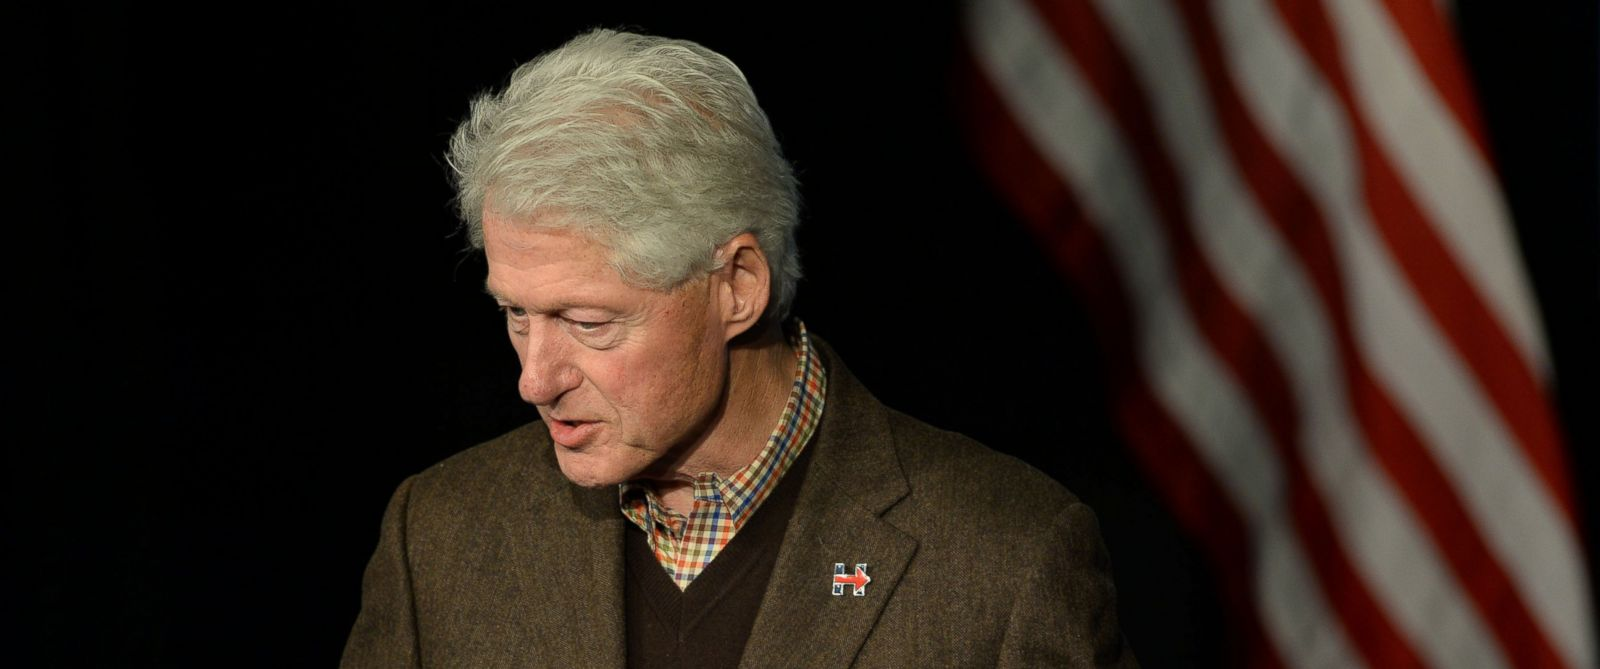 PHOTO: Former President Bill Clinton speaks at Exeter Town Hall, Jan. 4, 2016 in Exeter, N.H. Bill Clinton spent the day campaigning for his wife, Democratic presidential candidate Hillary Clinton.